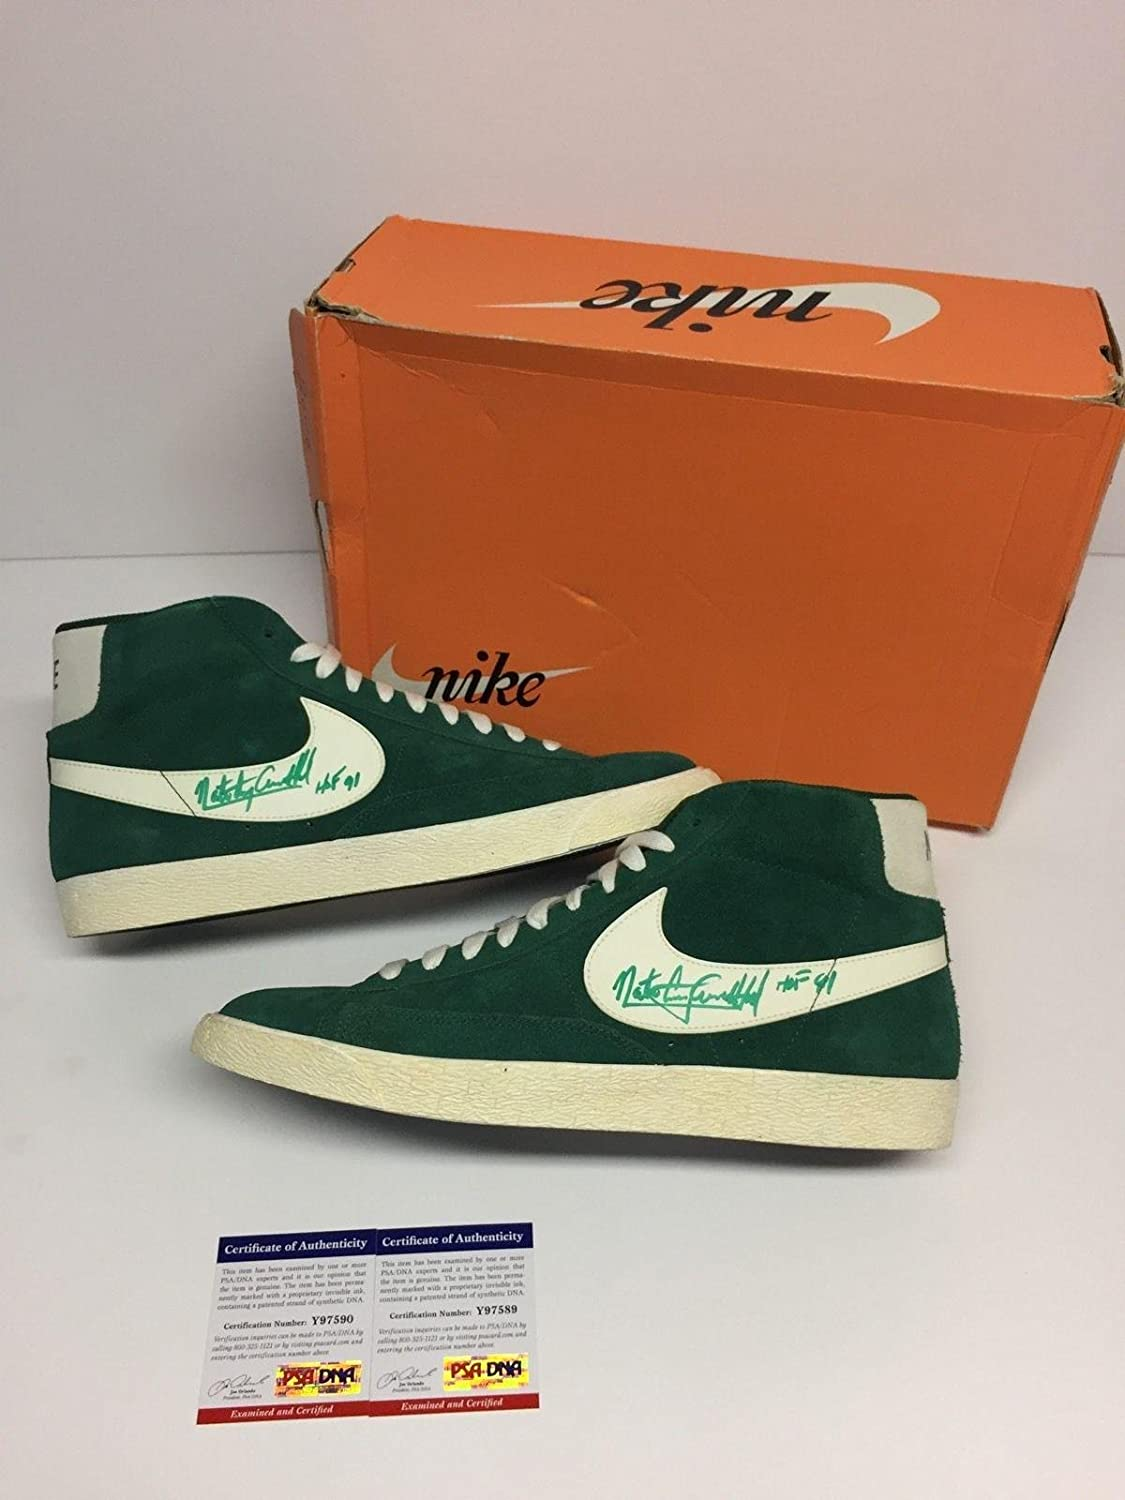 a1acb3d06063f Nate Archibald Dual Signed Vintage Nike Blazer High Retro Basketball Shoes  - PSA/DNA Certified - Autographed NBA Sneakers at Amazon's Sports  Collectibles ...